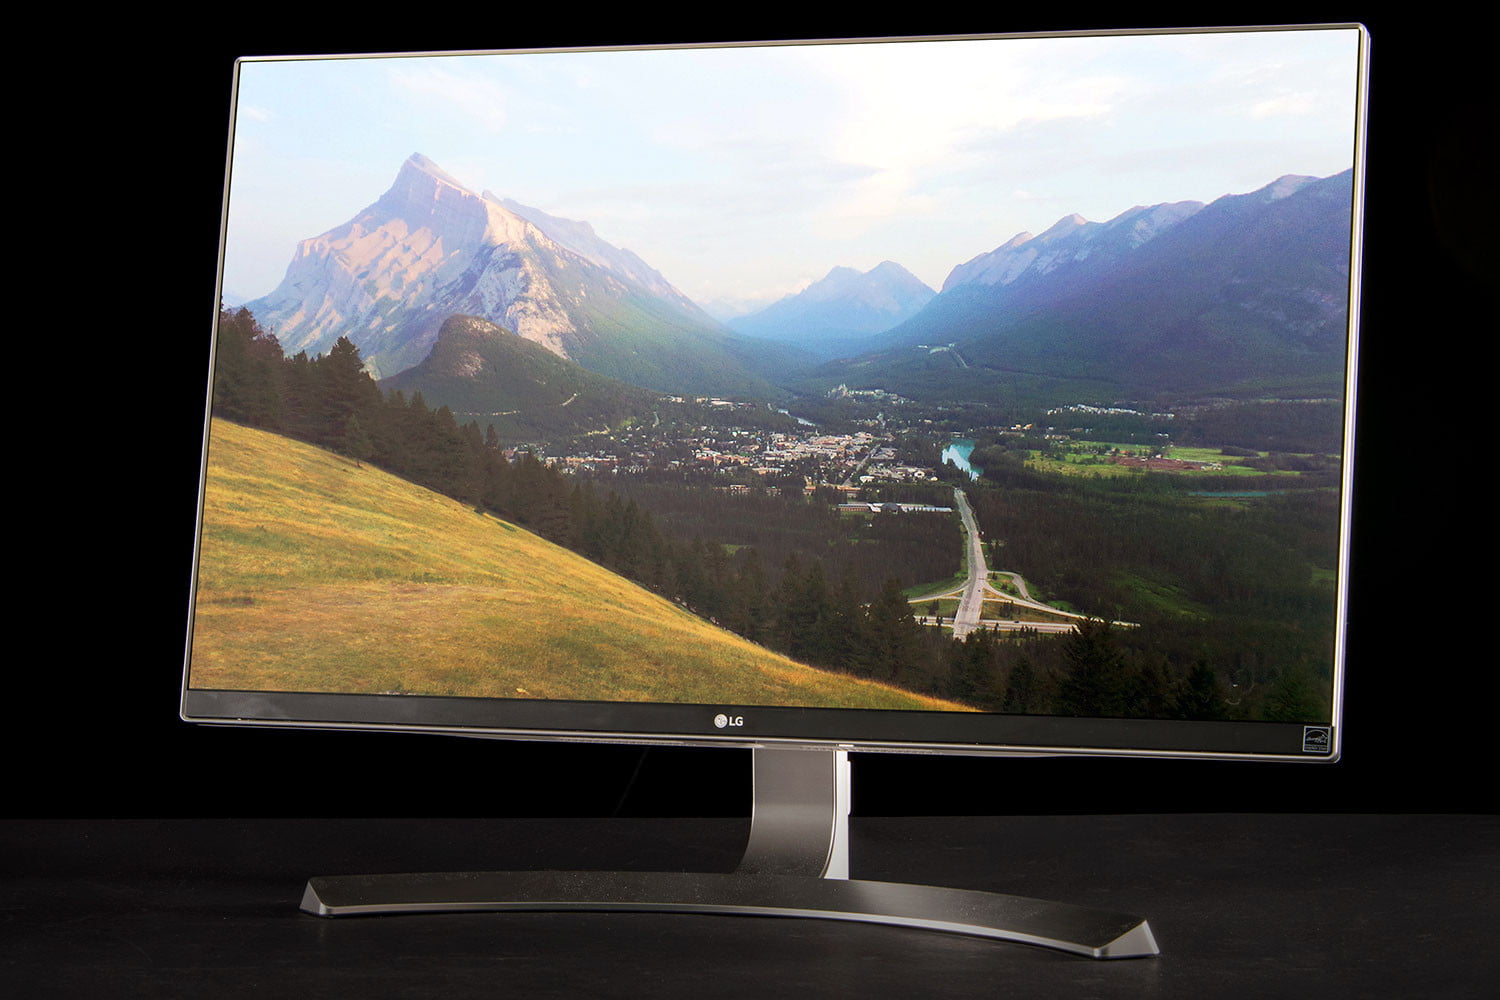 Calibrating your monitor for the best viewing experience - Ctrl Alt